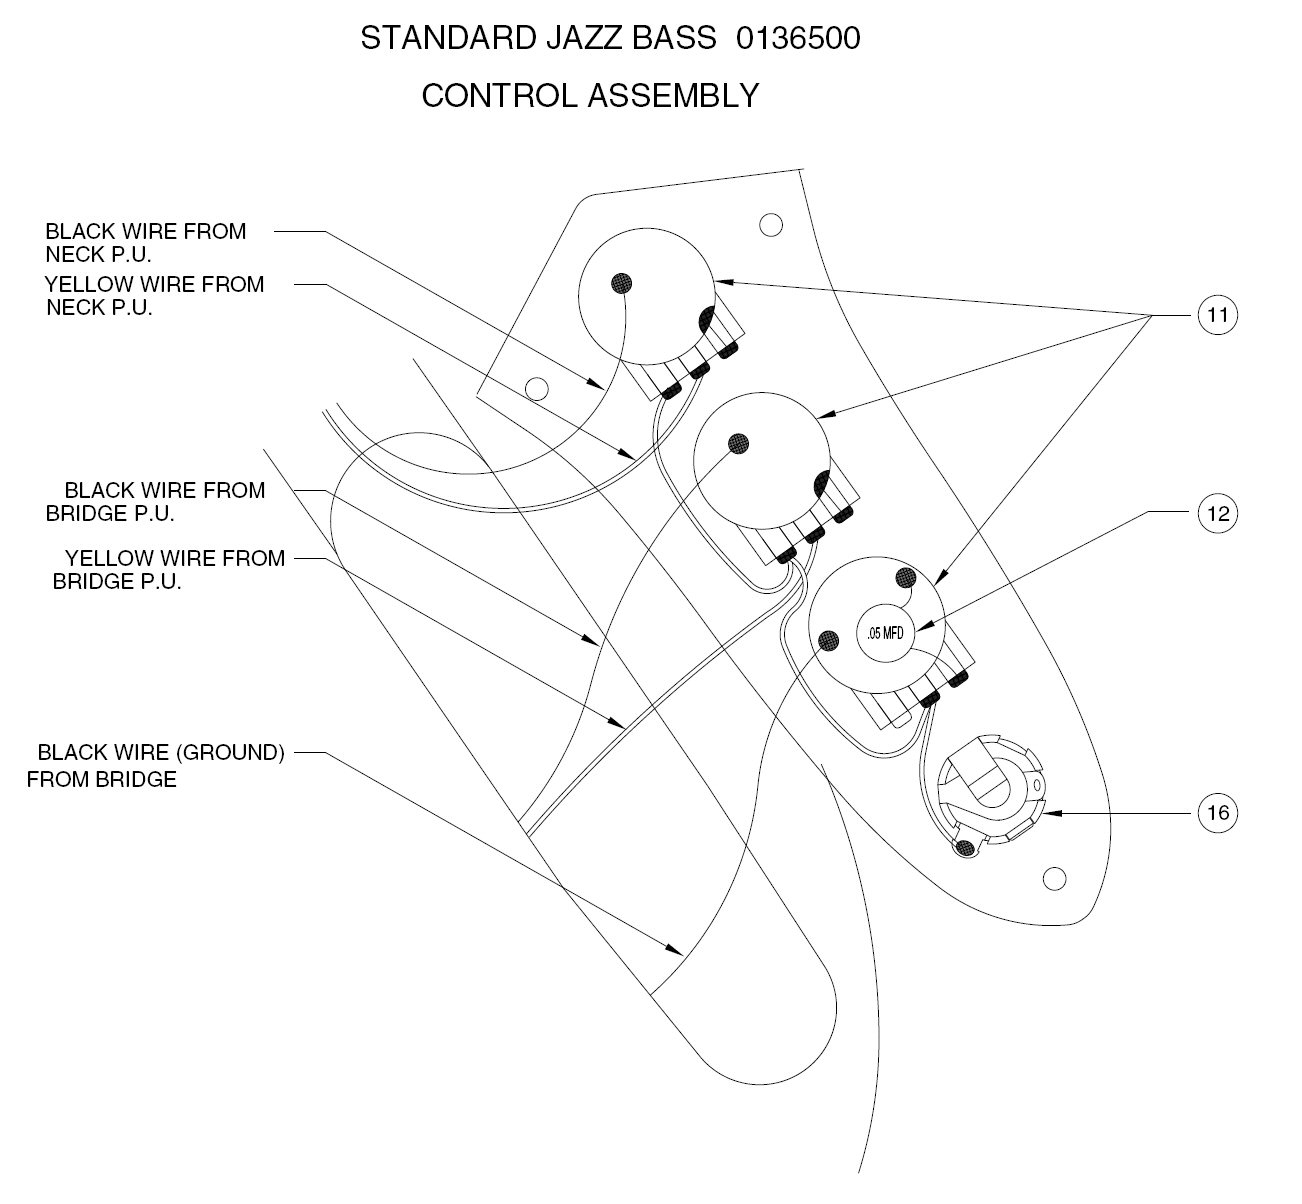 Wiring Diagram For Fender Jazz Bass